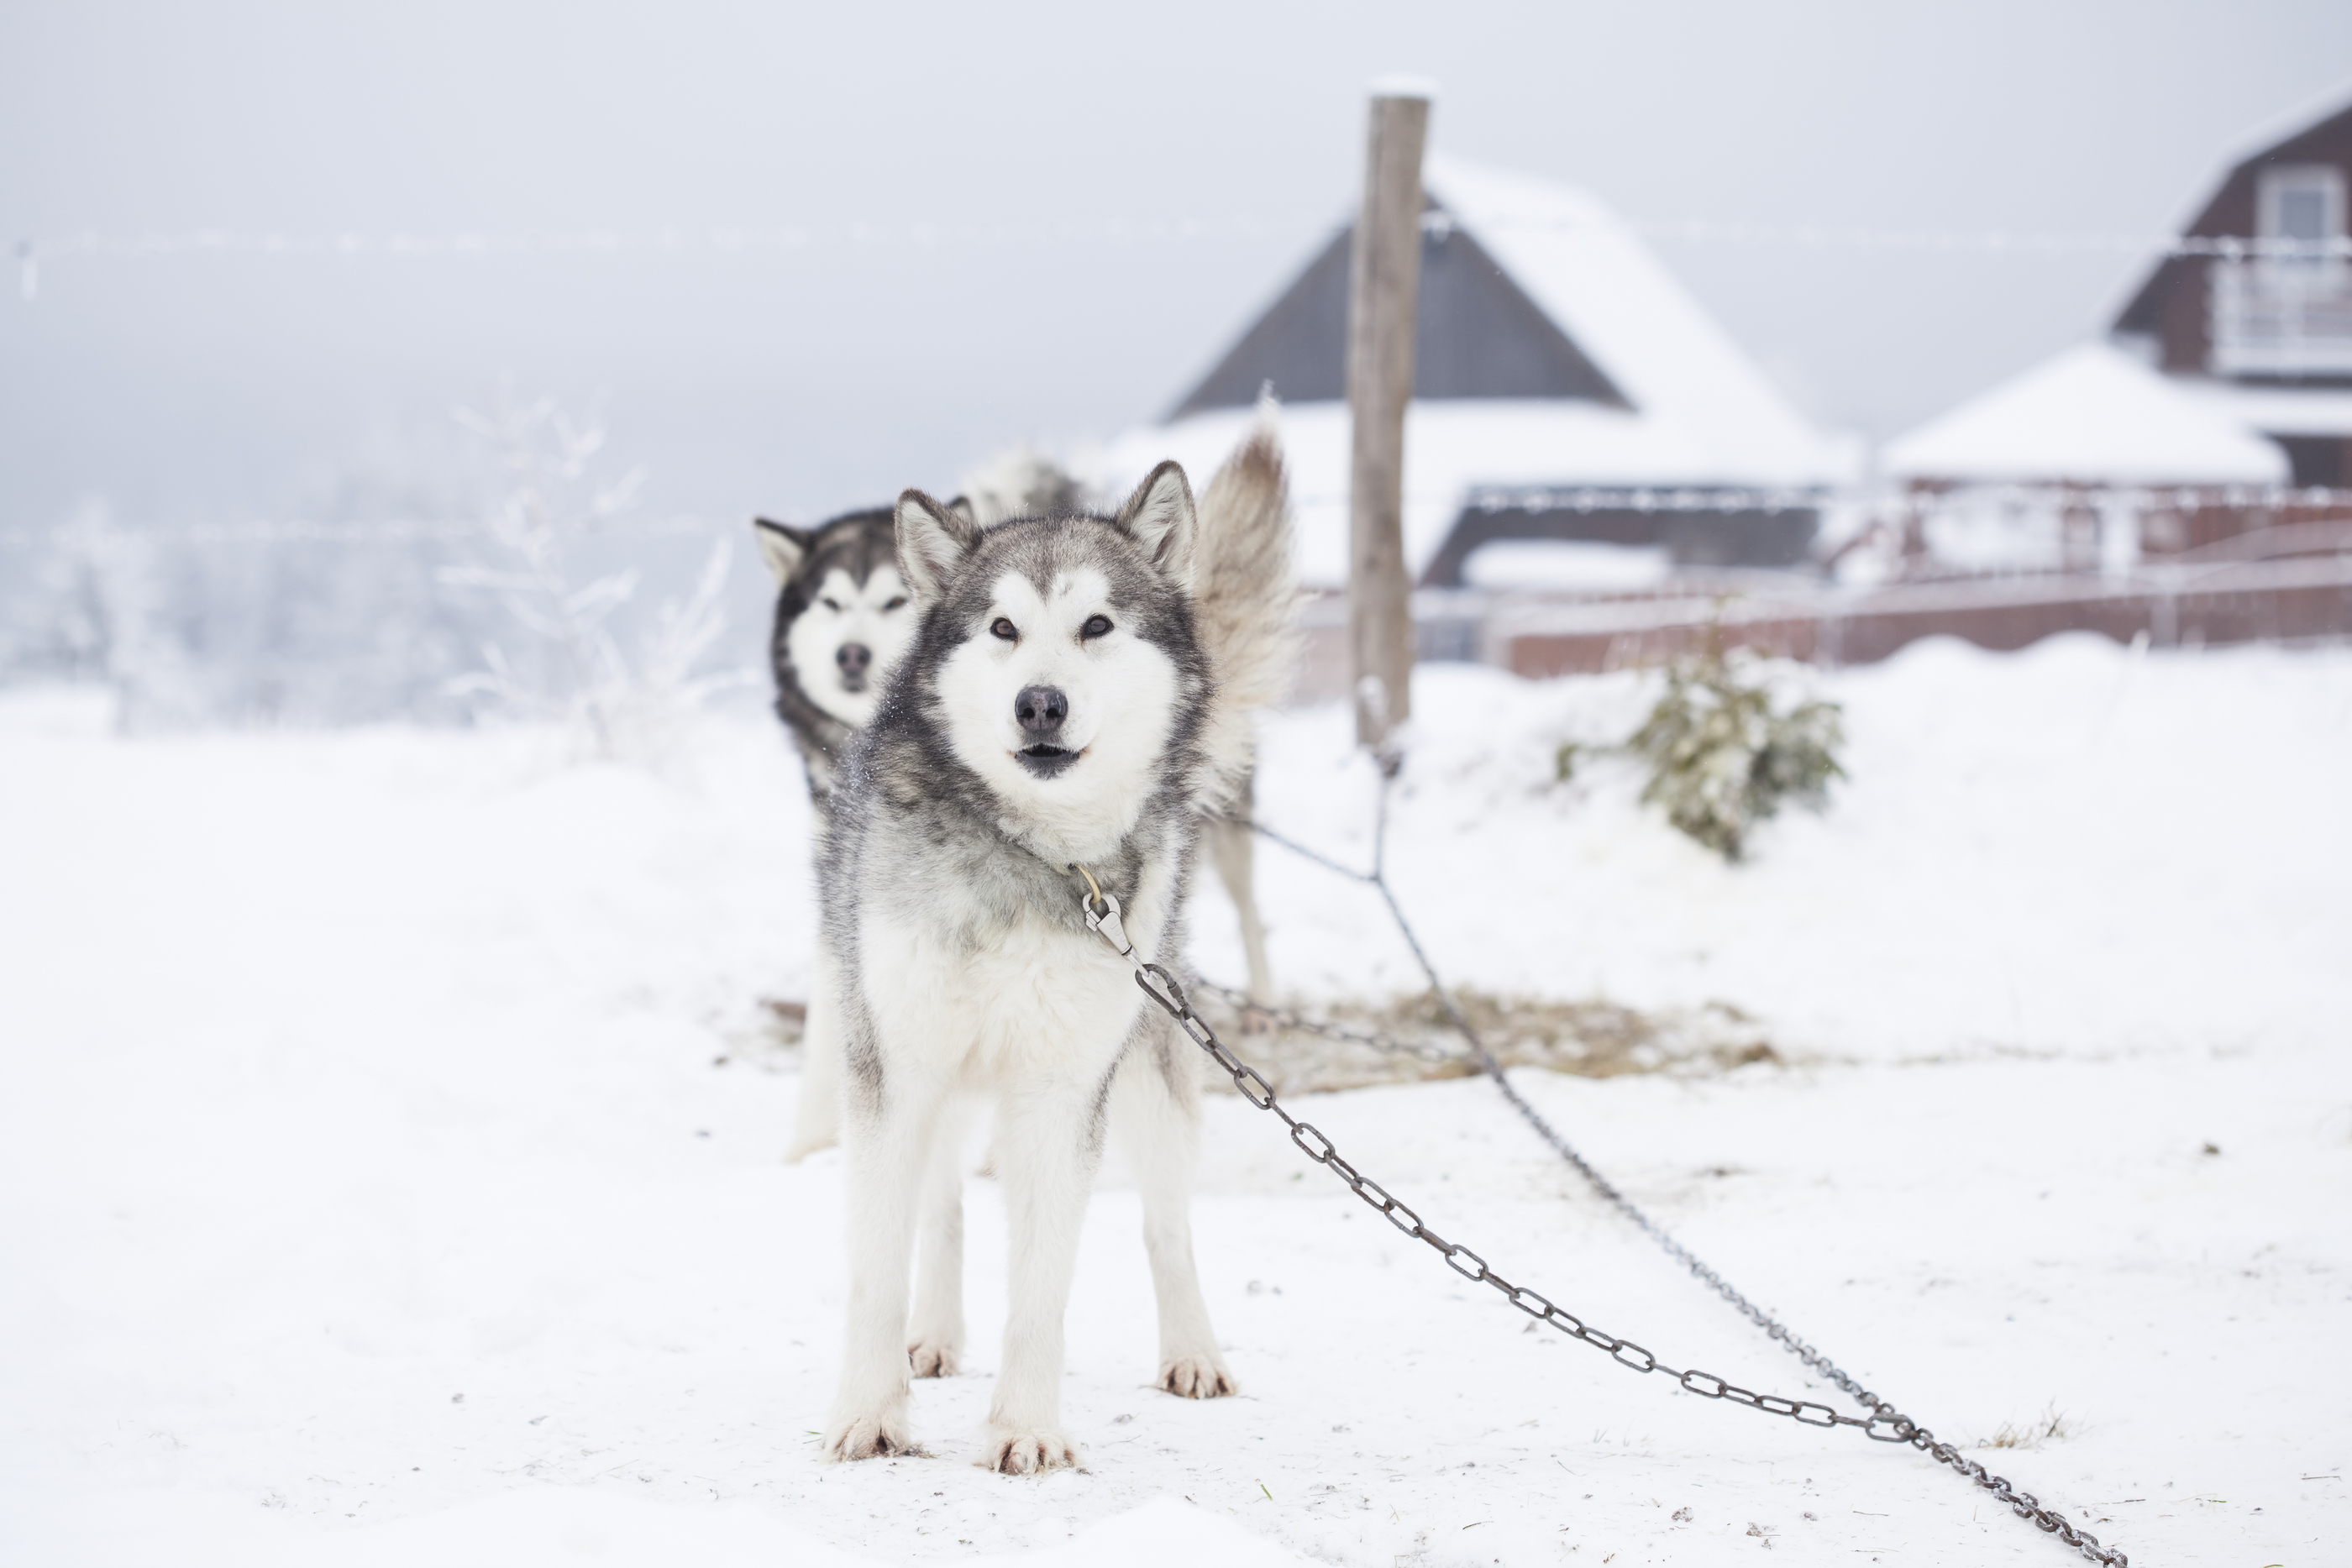 Siberian Husky waiting to start the ride in the snow